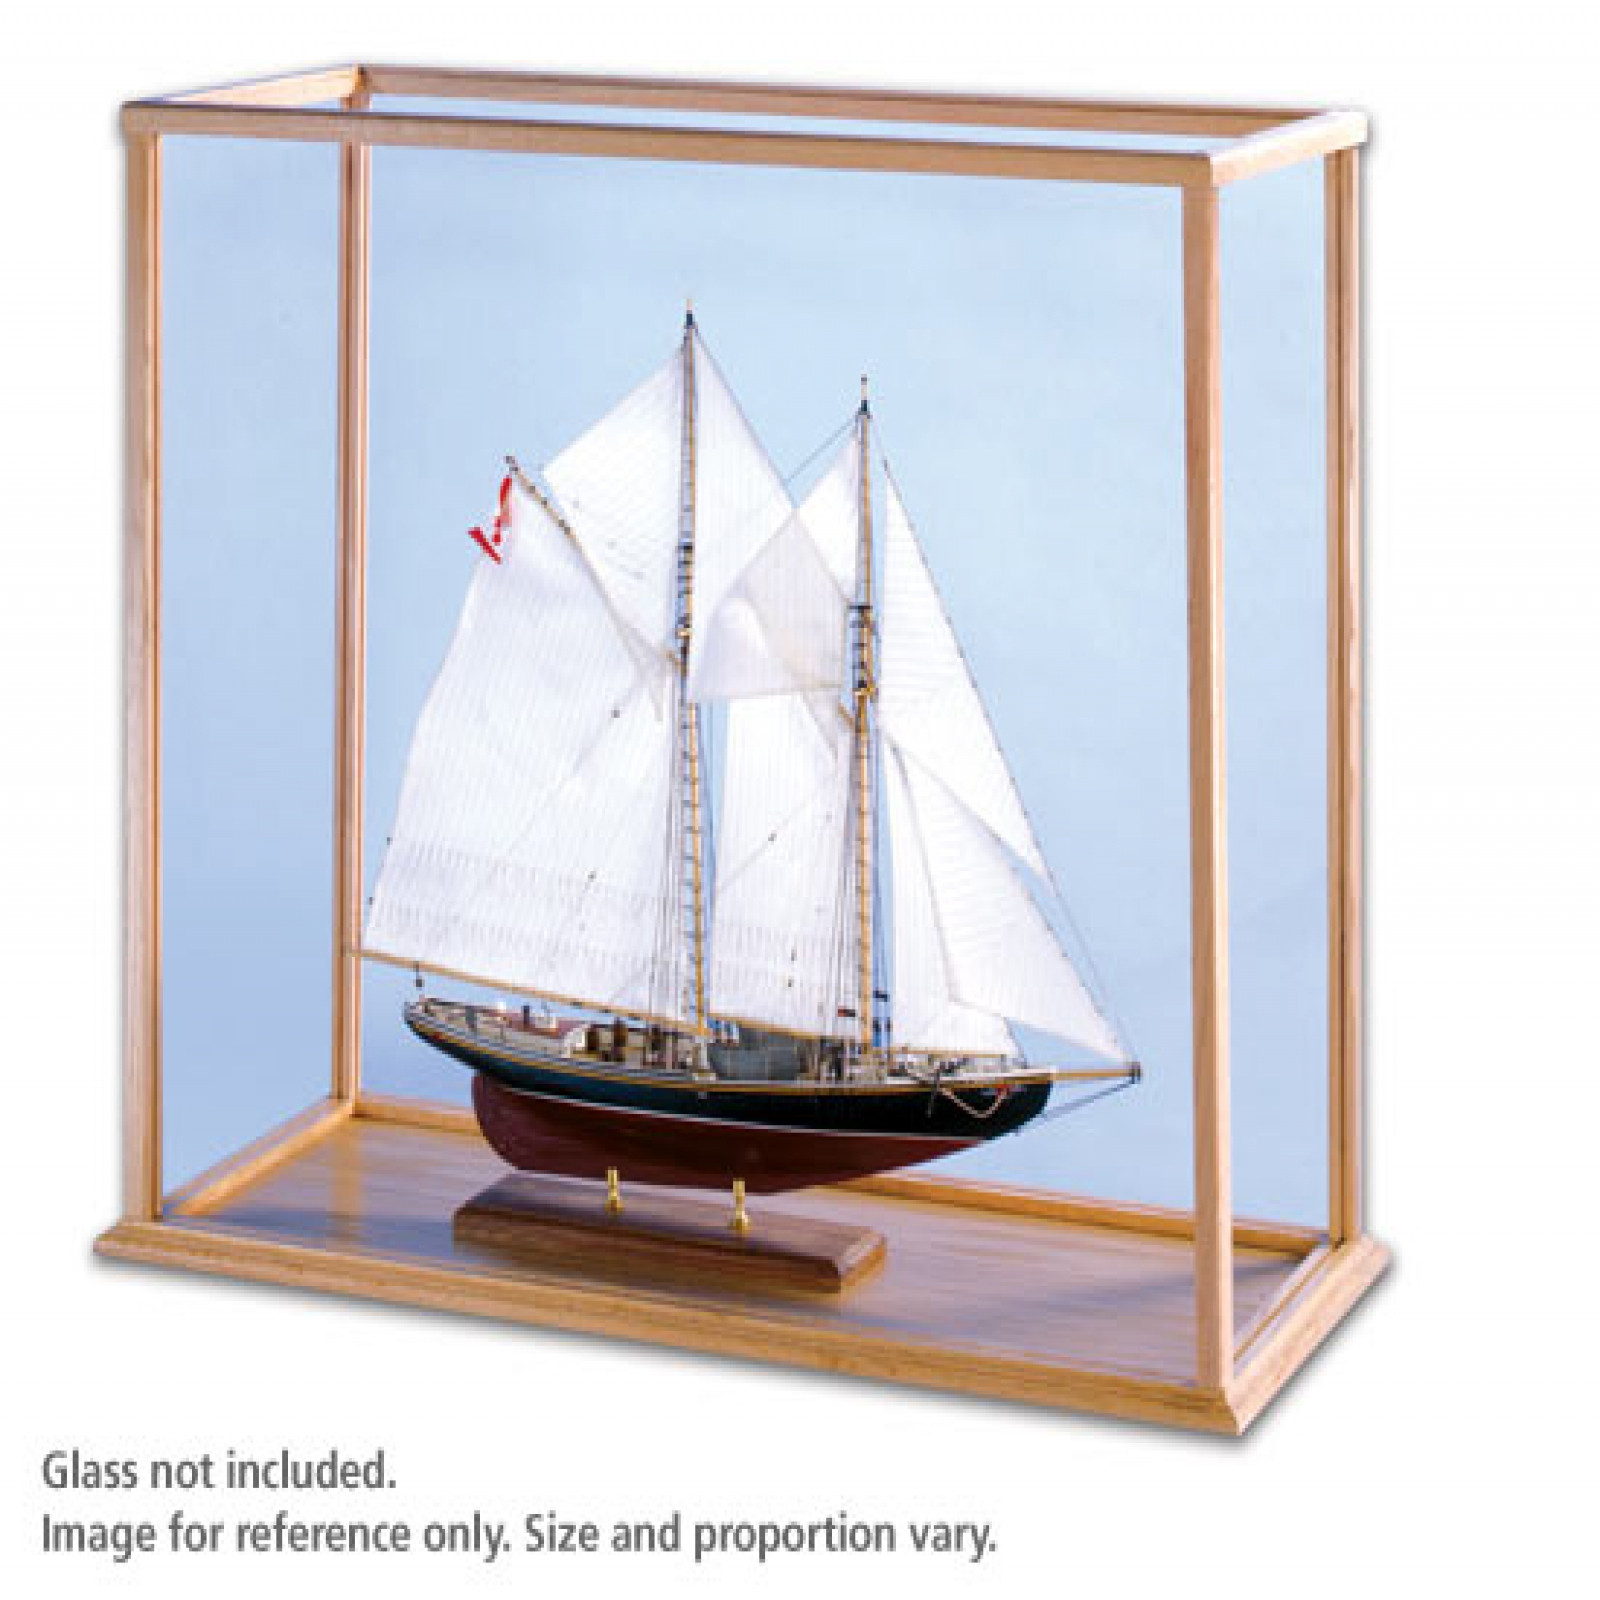 OAK SHIP MODEL CASE   L28 X W11 X H26   KIT